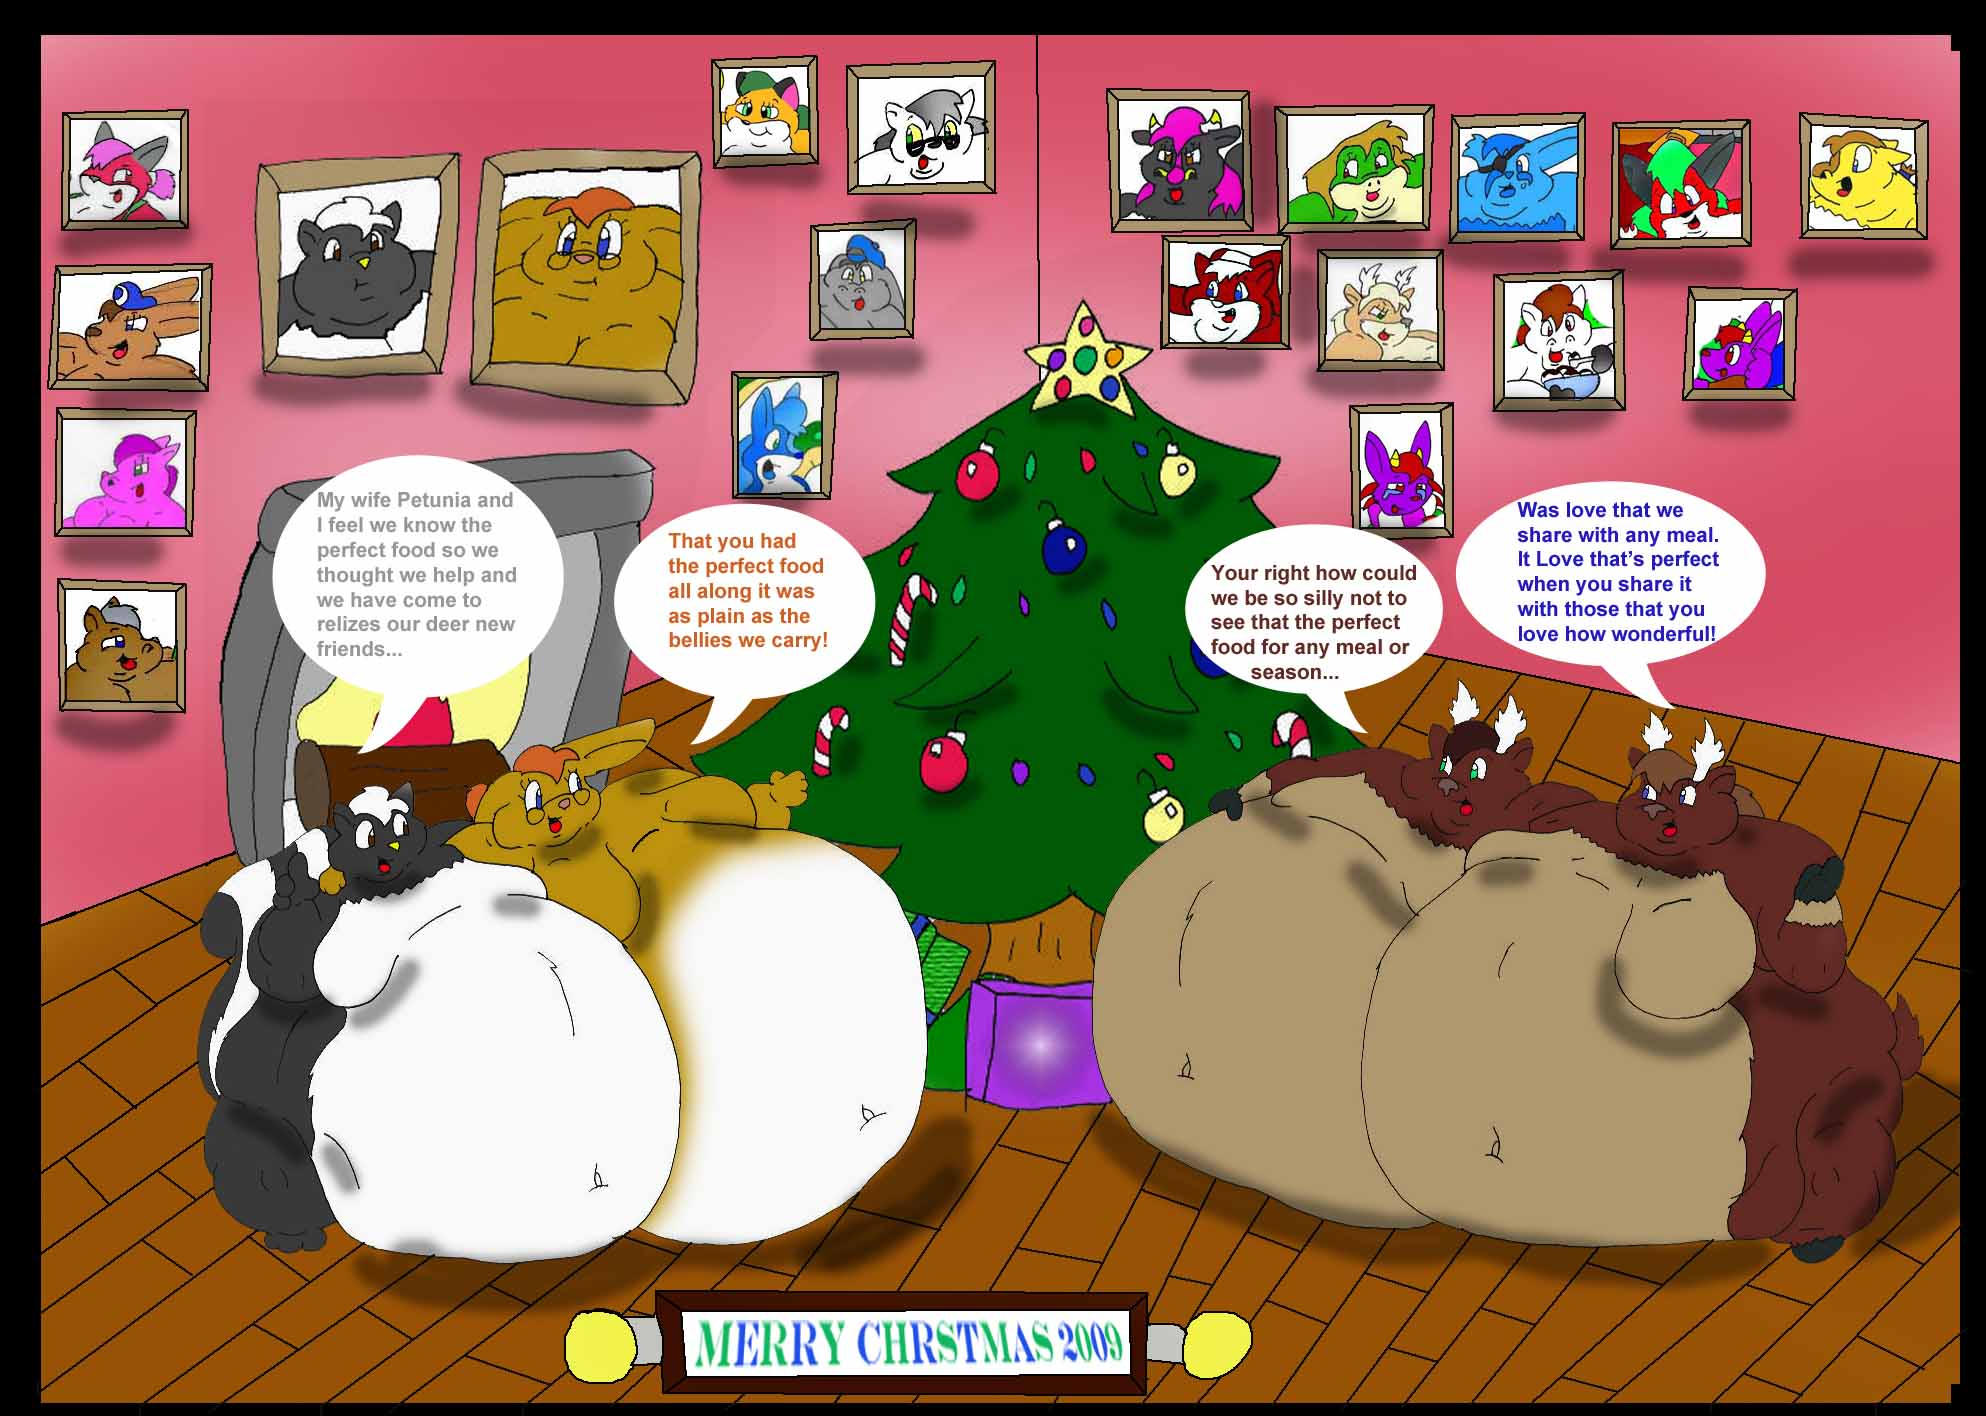 Fat Furs Weight Gain: The Perfect Christmas Food 14 By Sakenskunk On DeviantArt